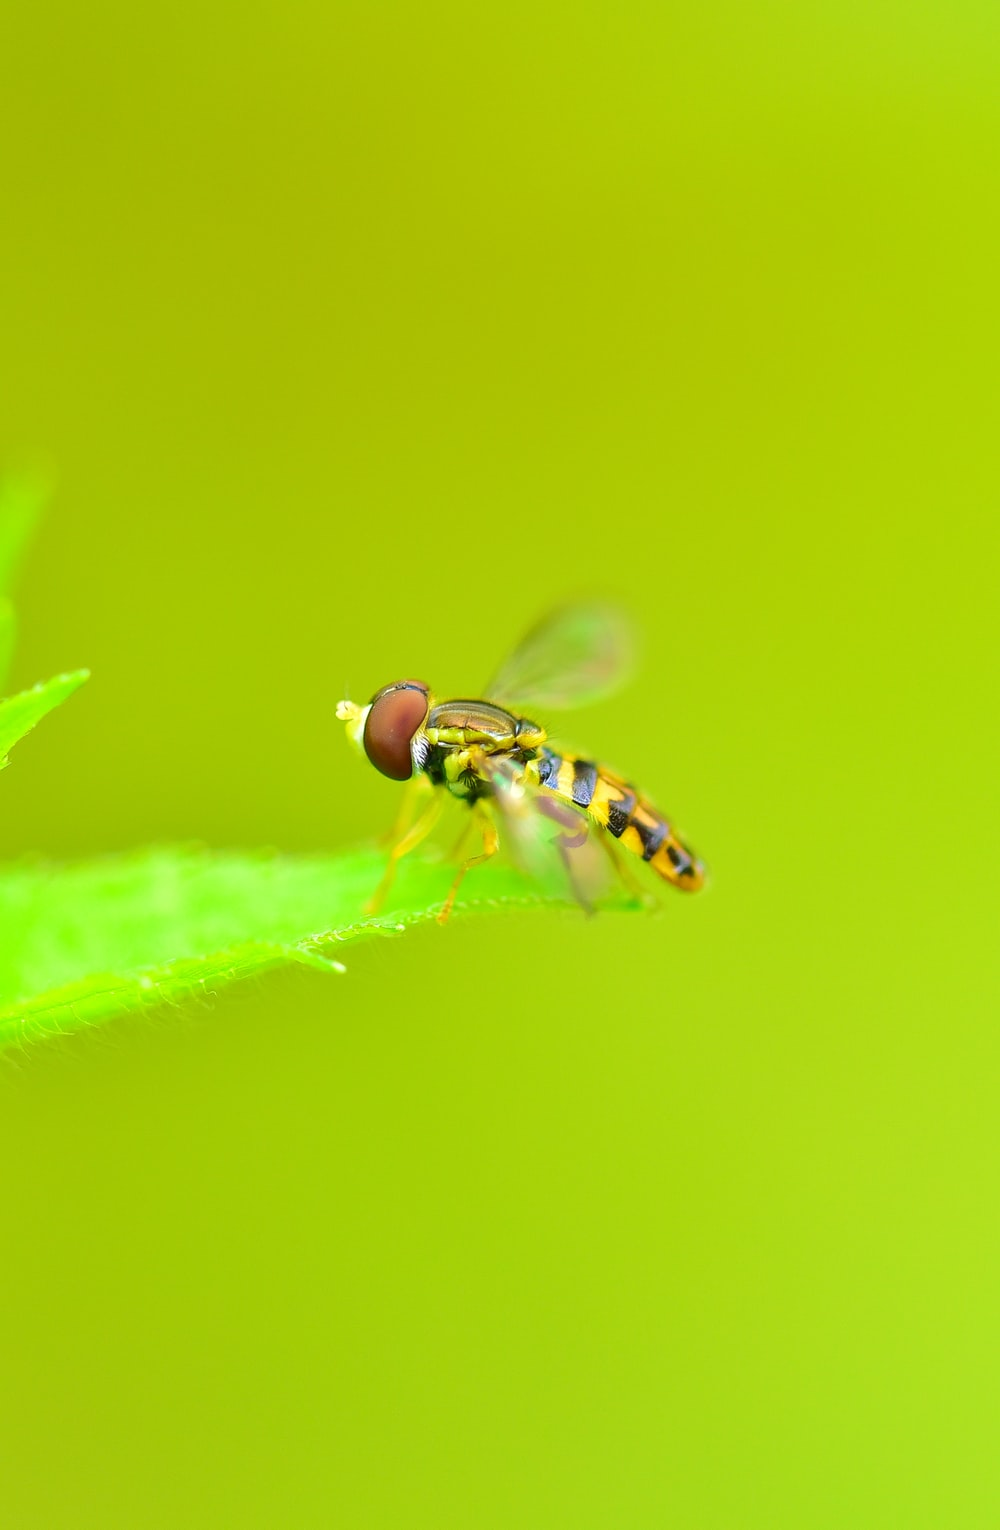 macro photography of hoverfly on leaf